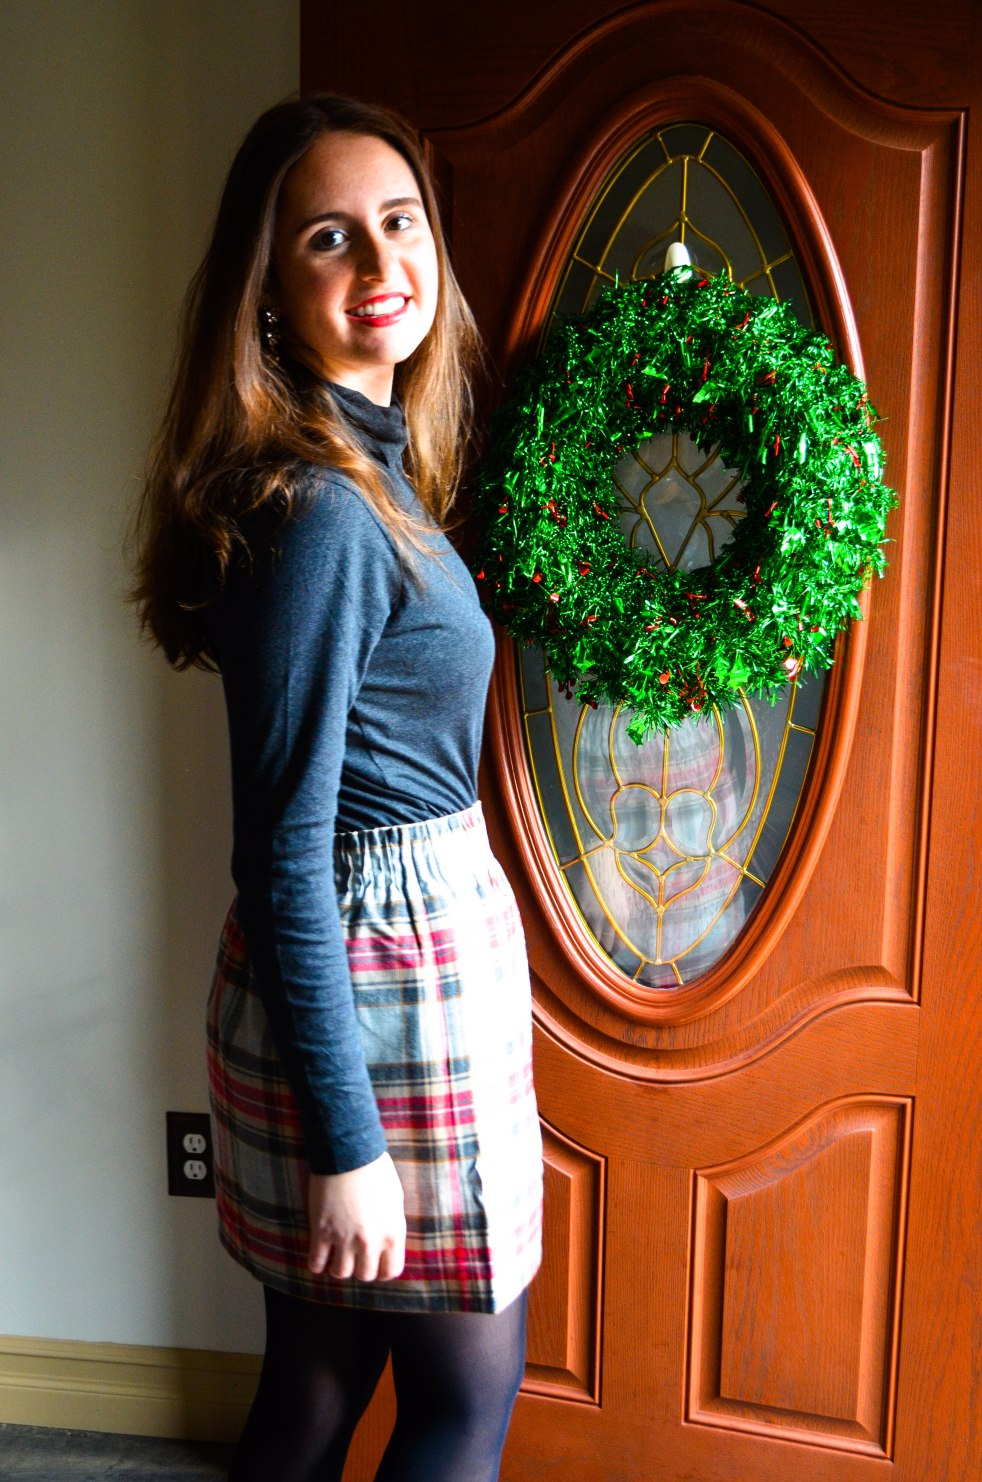 momentsofamermaid moments of a mermaid ootd outfit of the day winter christmas holiday skirt plaid j. crew factory j crew turtle neck burberry black tights preppy classic cute what to wear how to wear how to dress for winter paperbag skirt